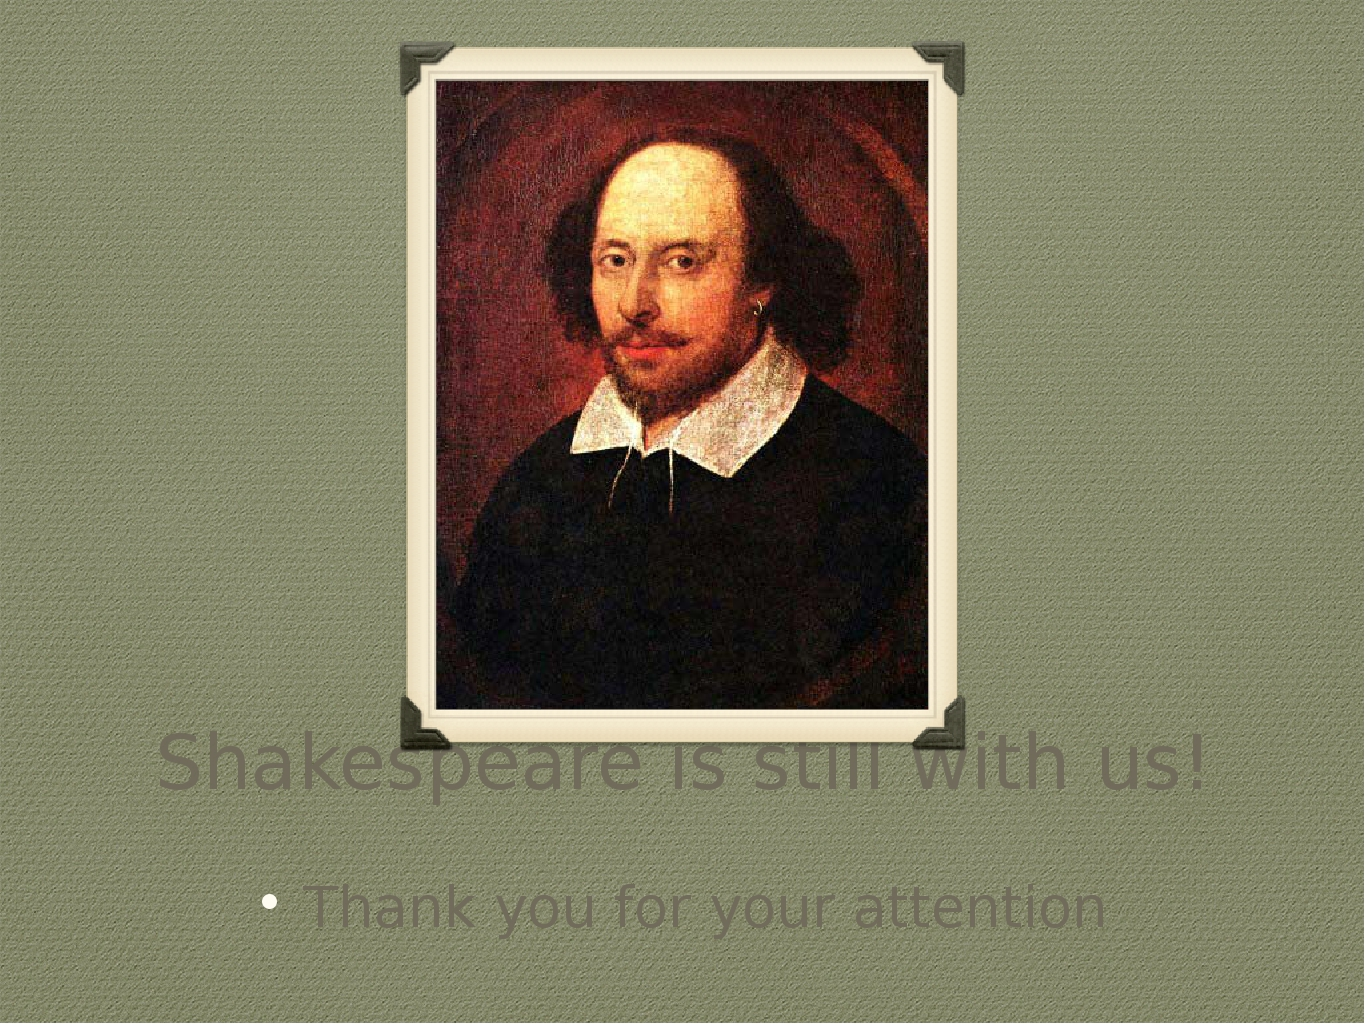 Shakespeare is still with us! Thank you for your attention